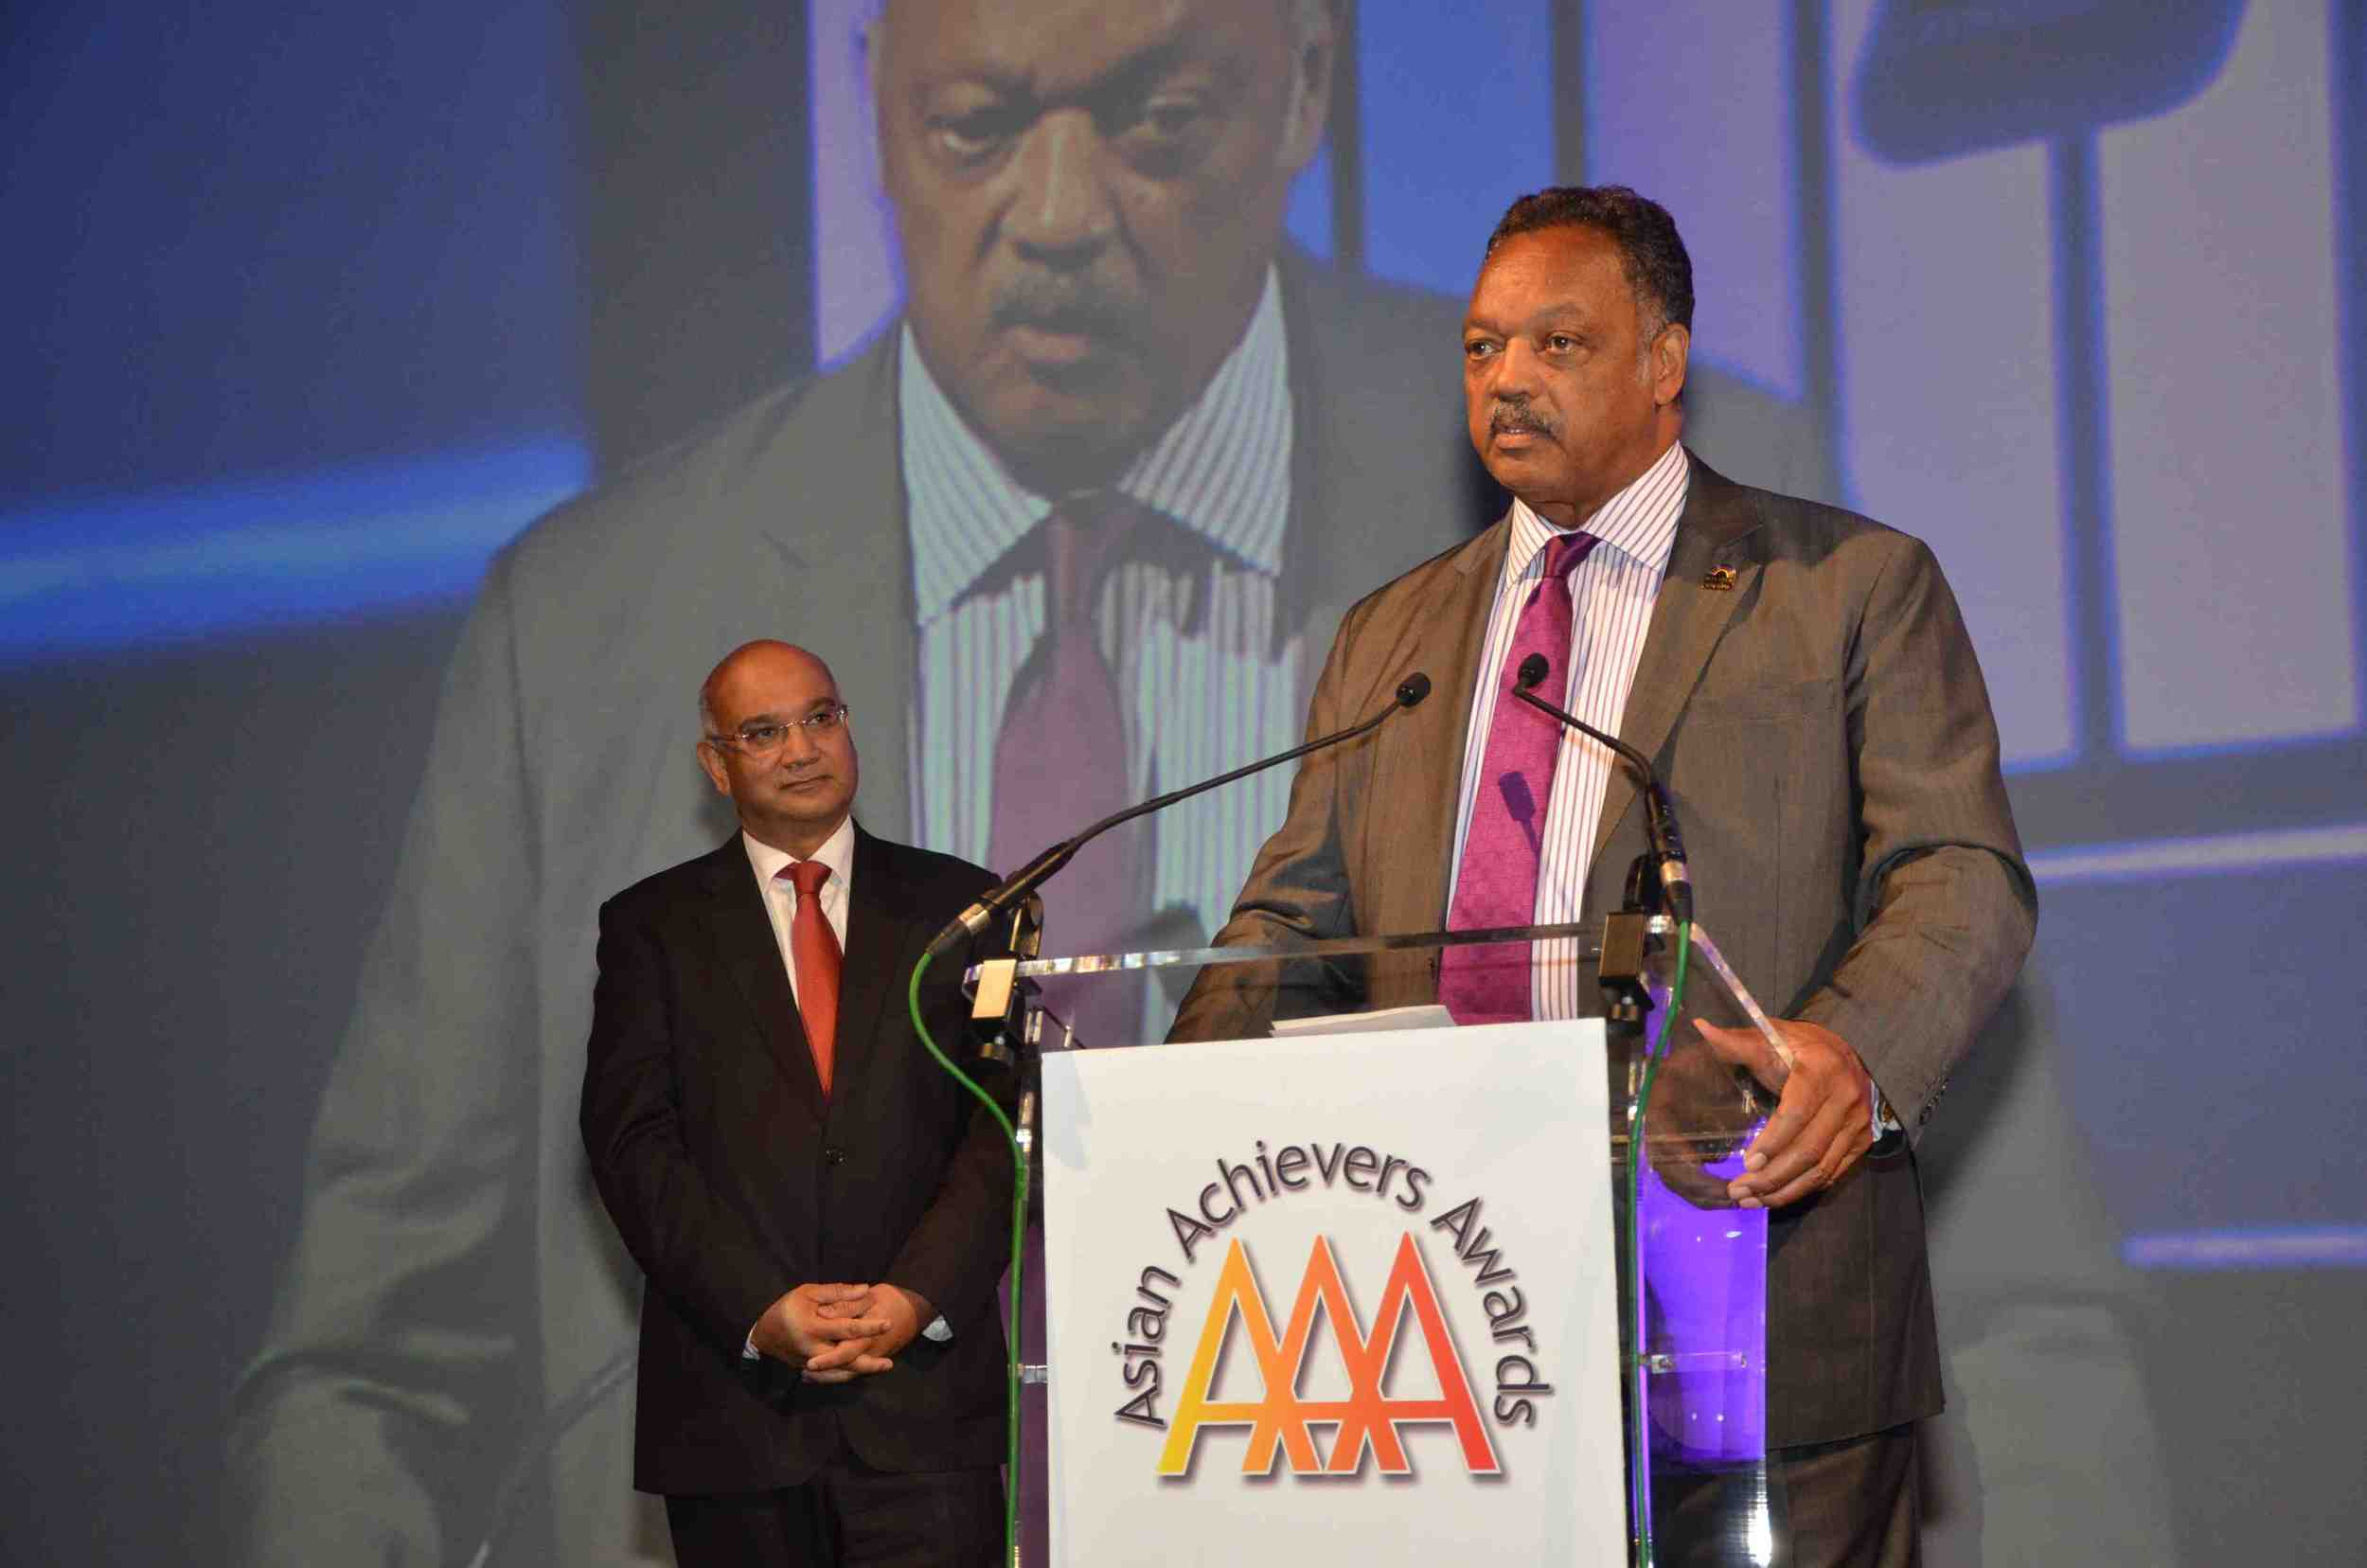 Rt Hon Keith Vaz MP; Rev Jesse Jackson